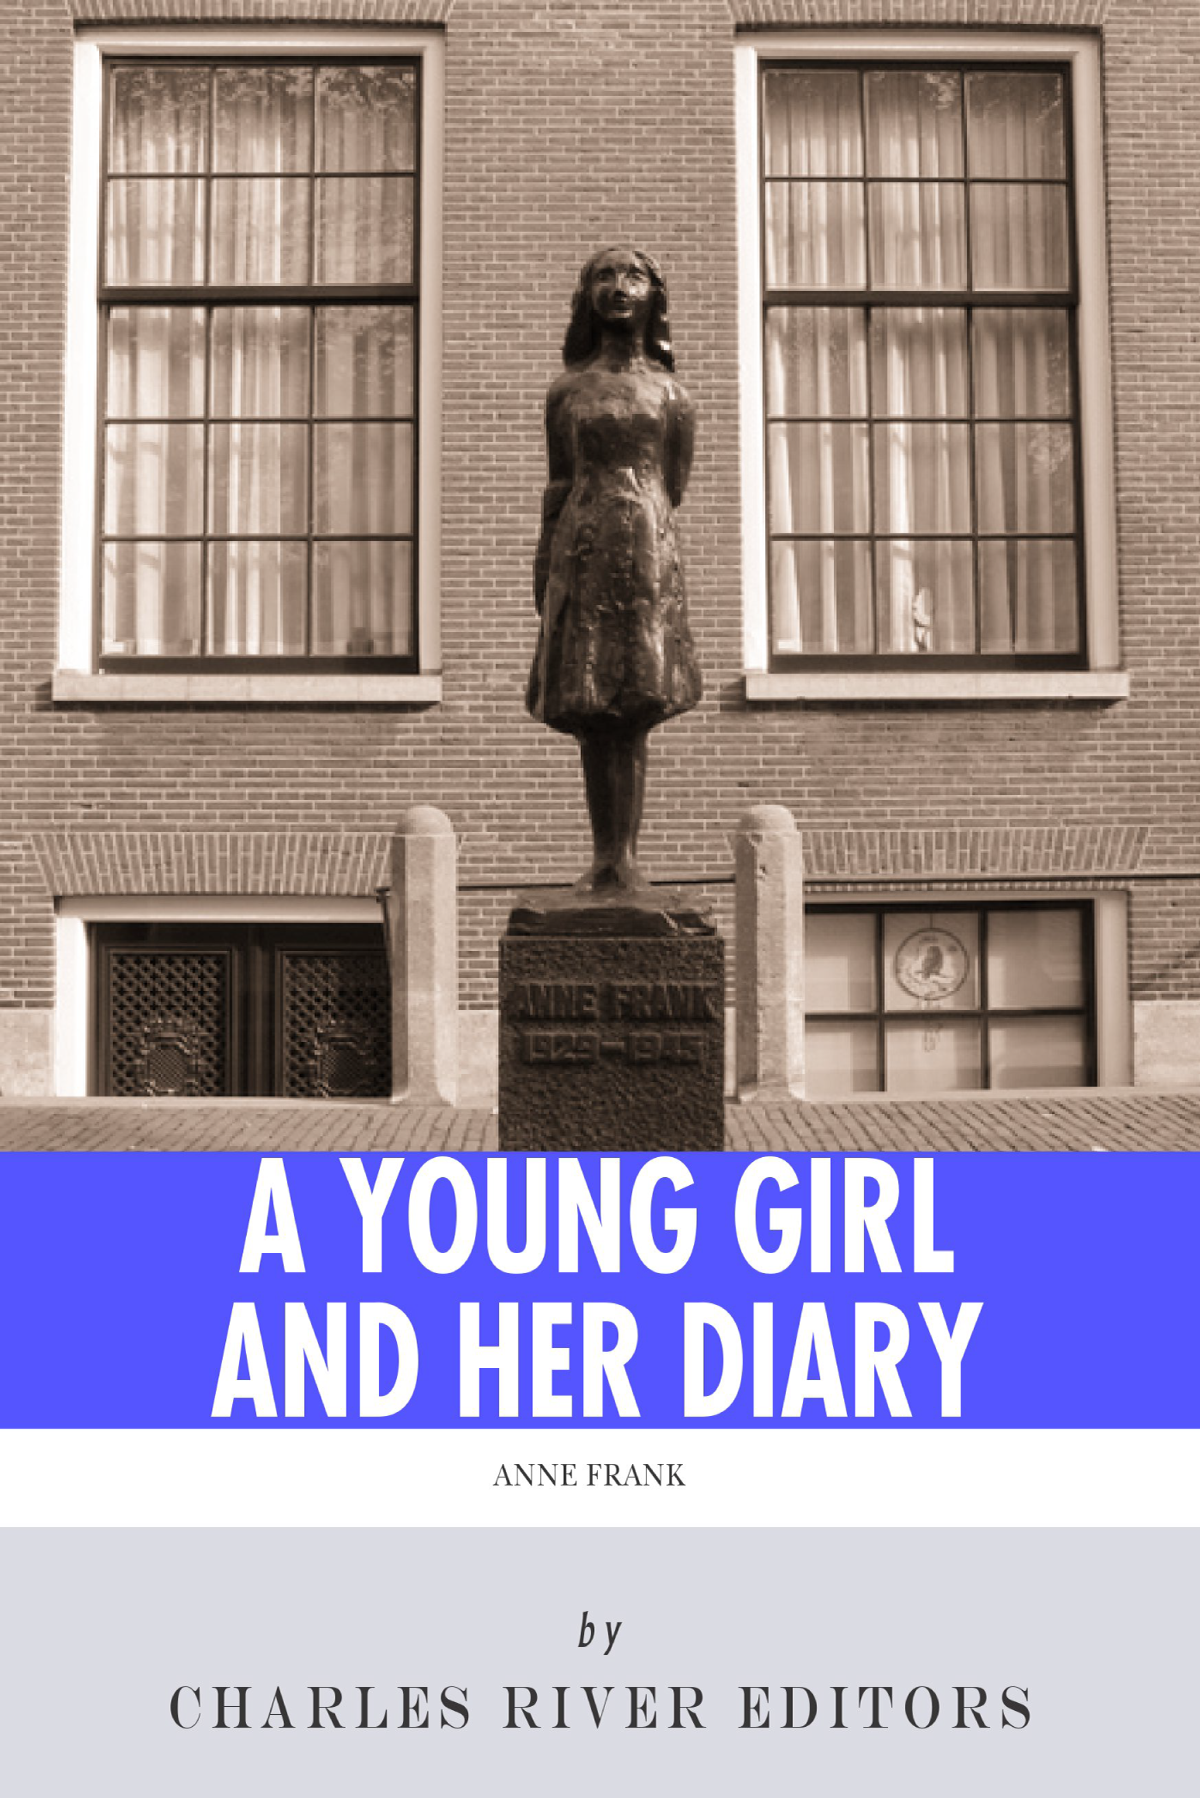 A Young Girl and Her Diary: The Life and Legacy of Anne Frank